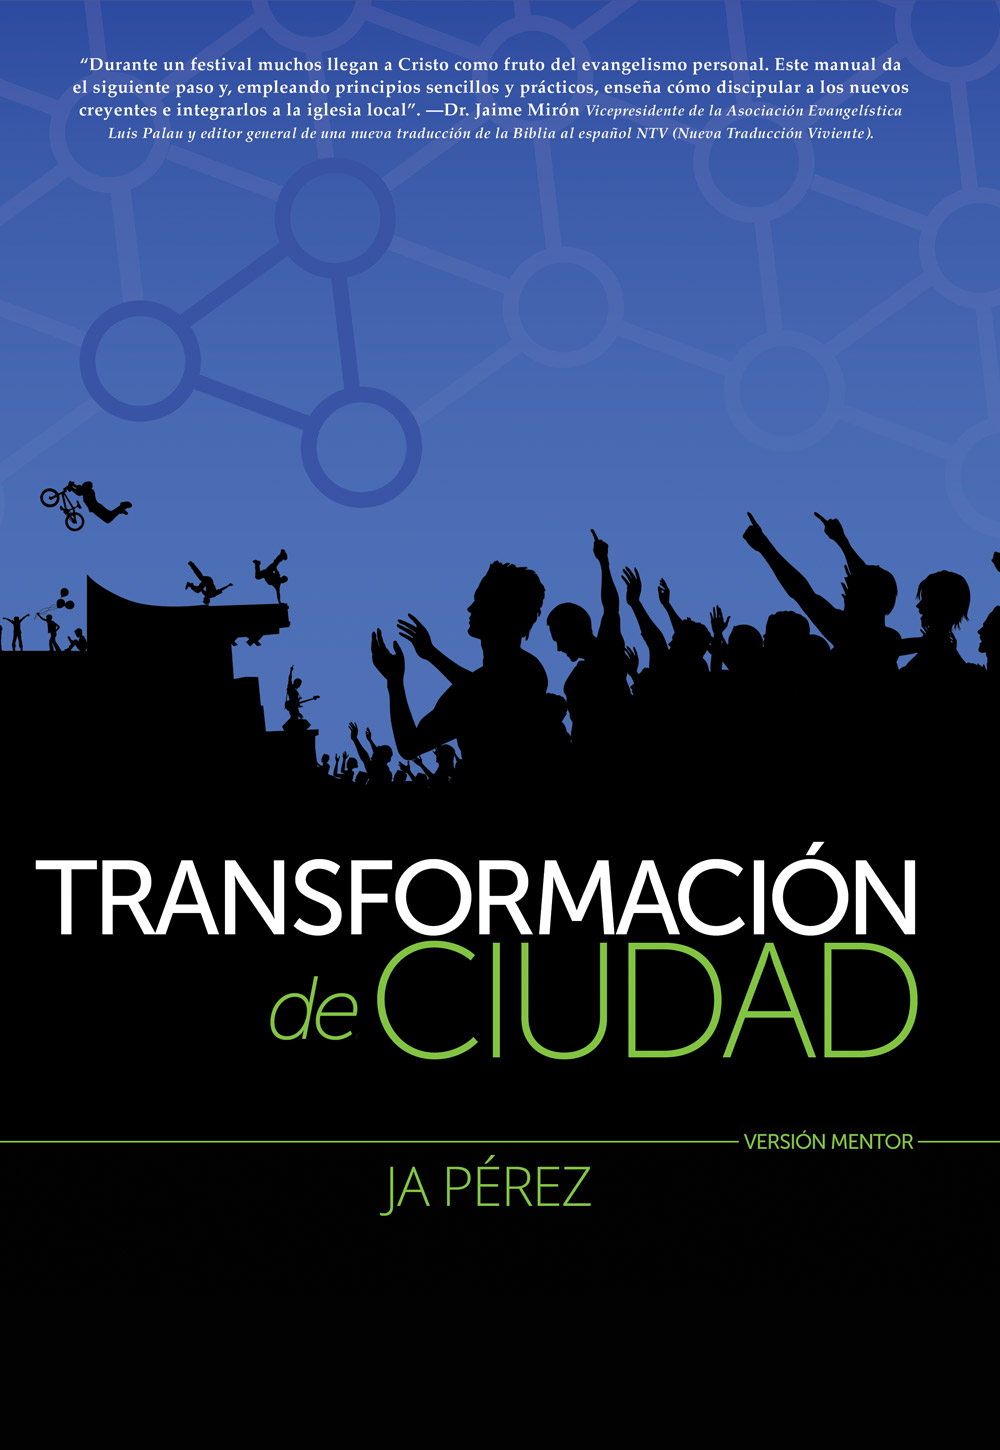 Transformacion de Ciudad: Version Mentor